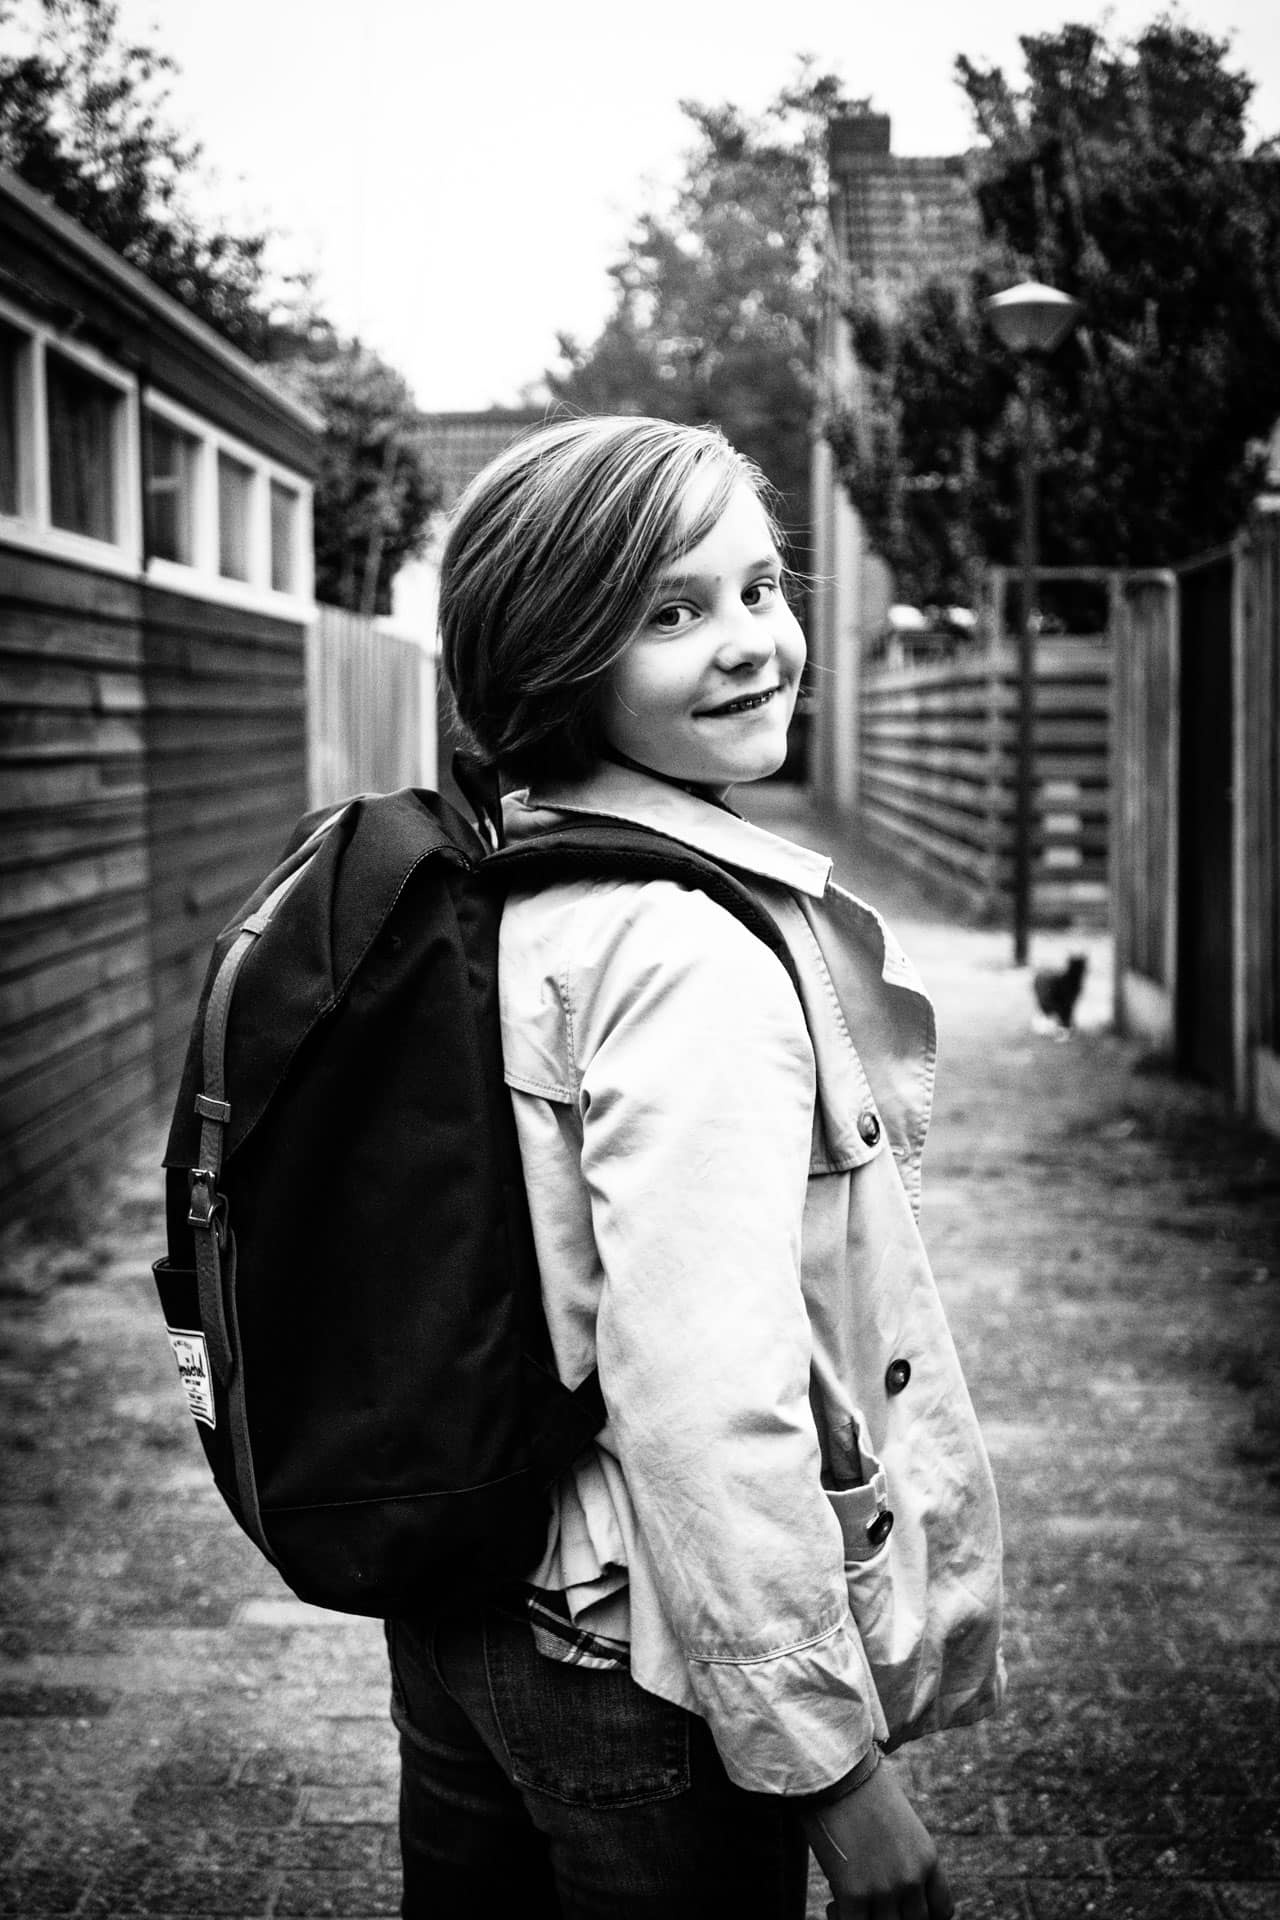 The very first day of school Daily Observations Street Photography